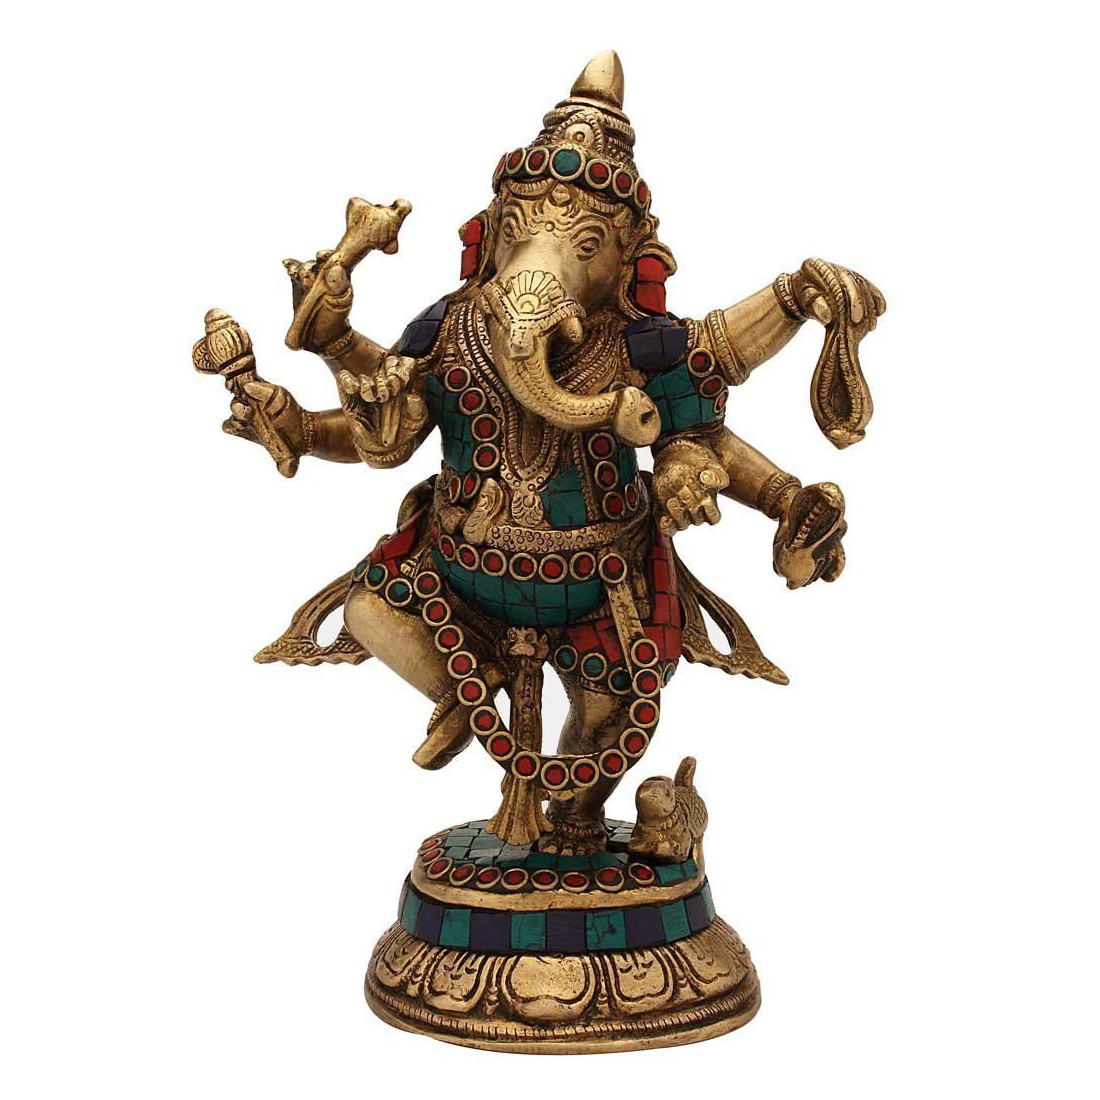 Dancing Lord Ganesha statue in Turquoise coral work